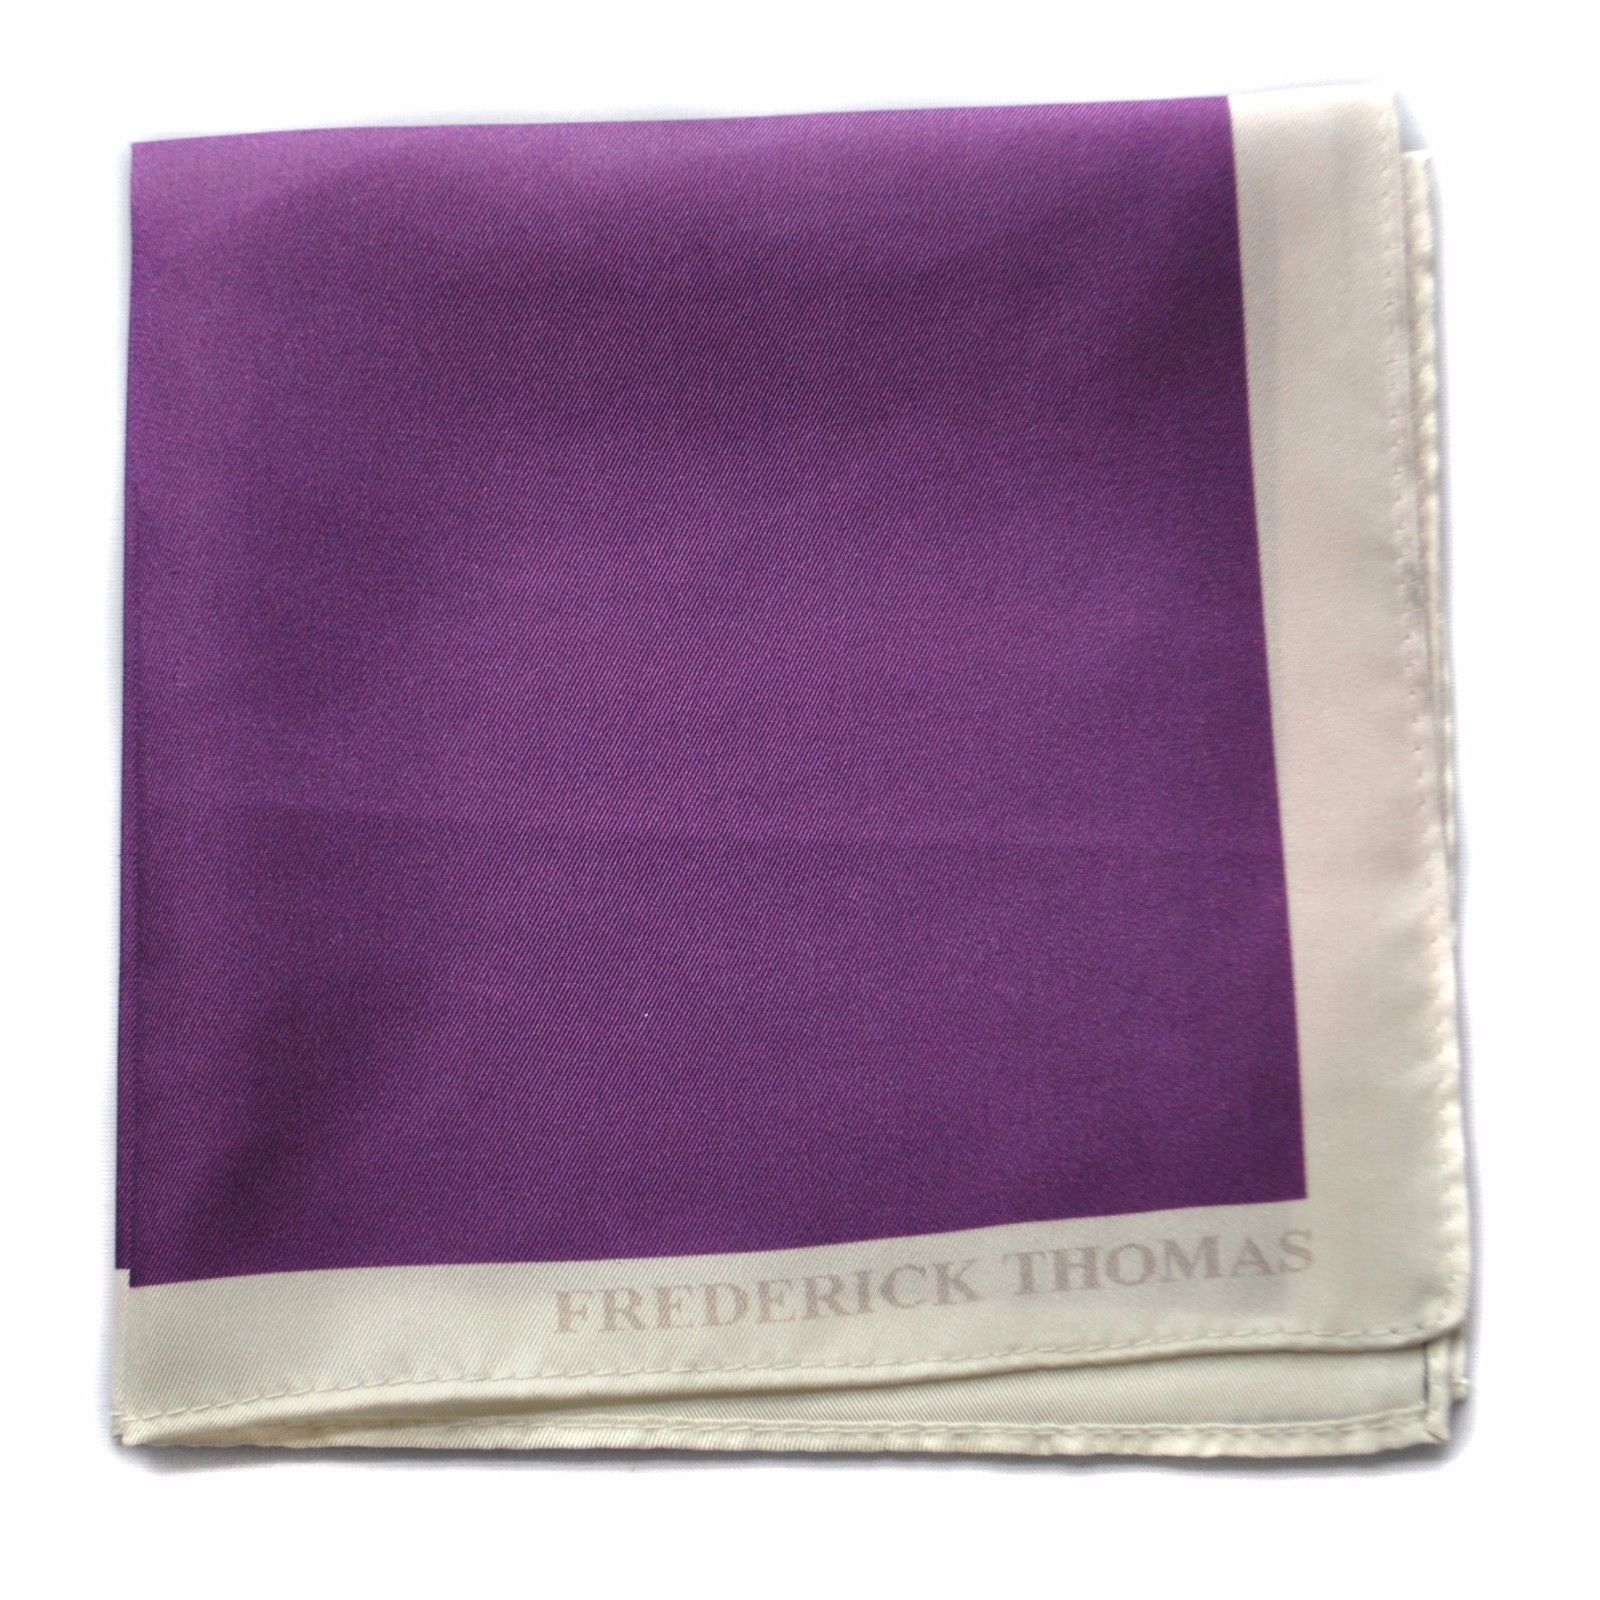 Frederick Thomas 100% silk cadbury purple pocket square handkerchief FT1660